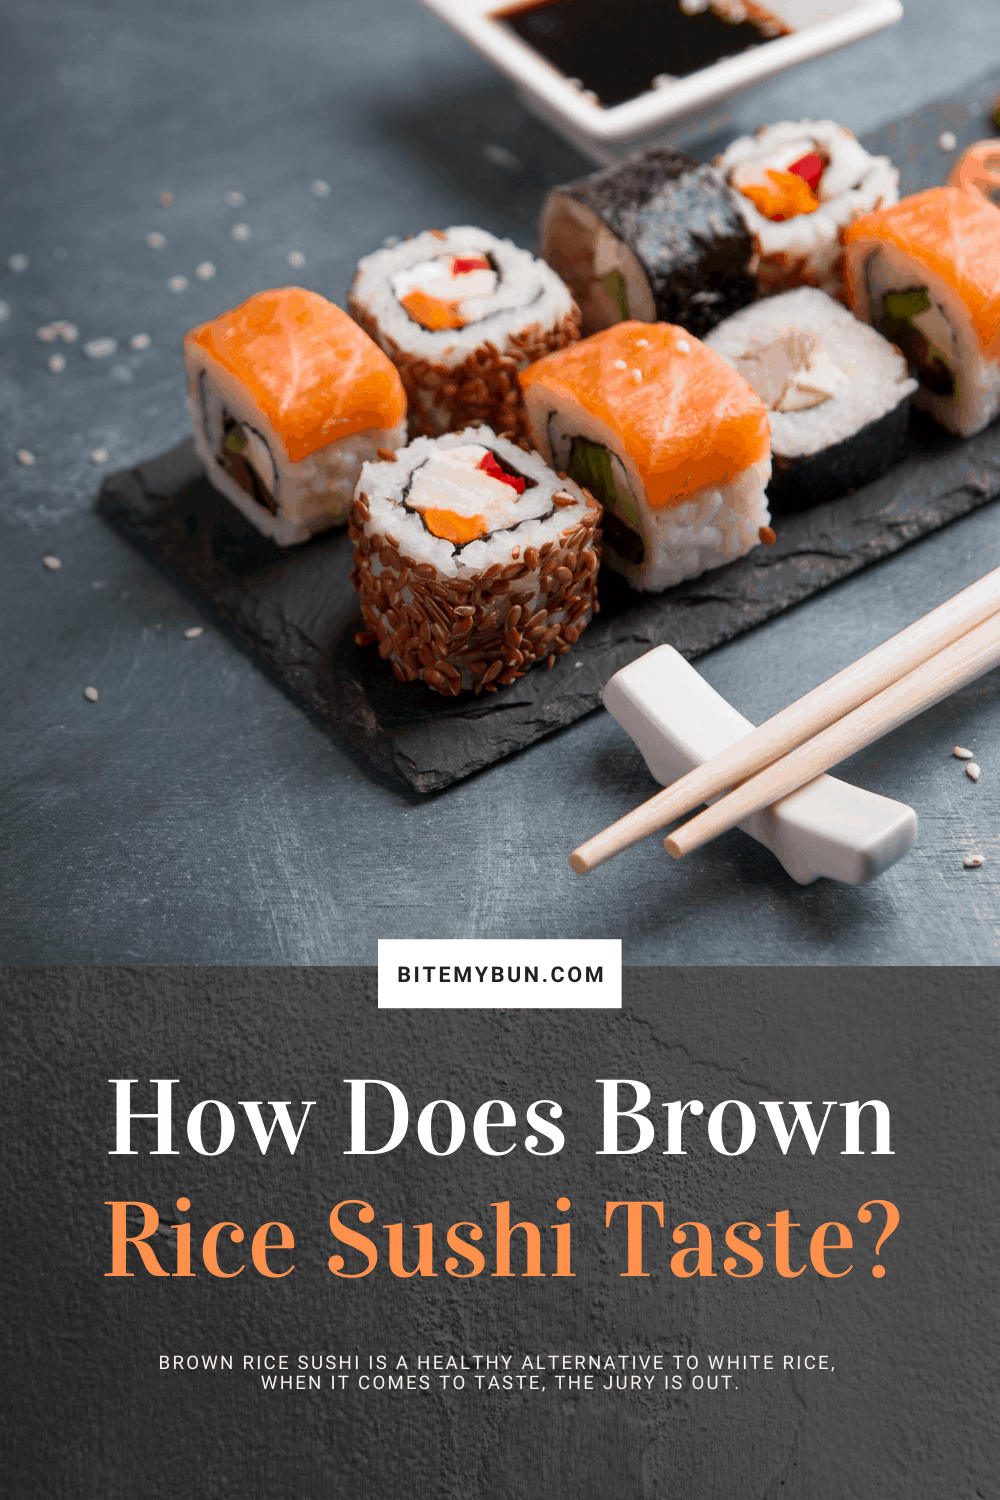 How does Brown rice sushi taste